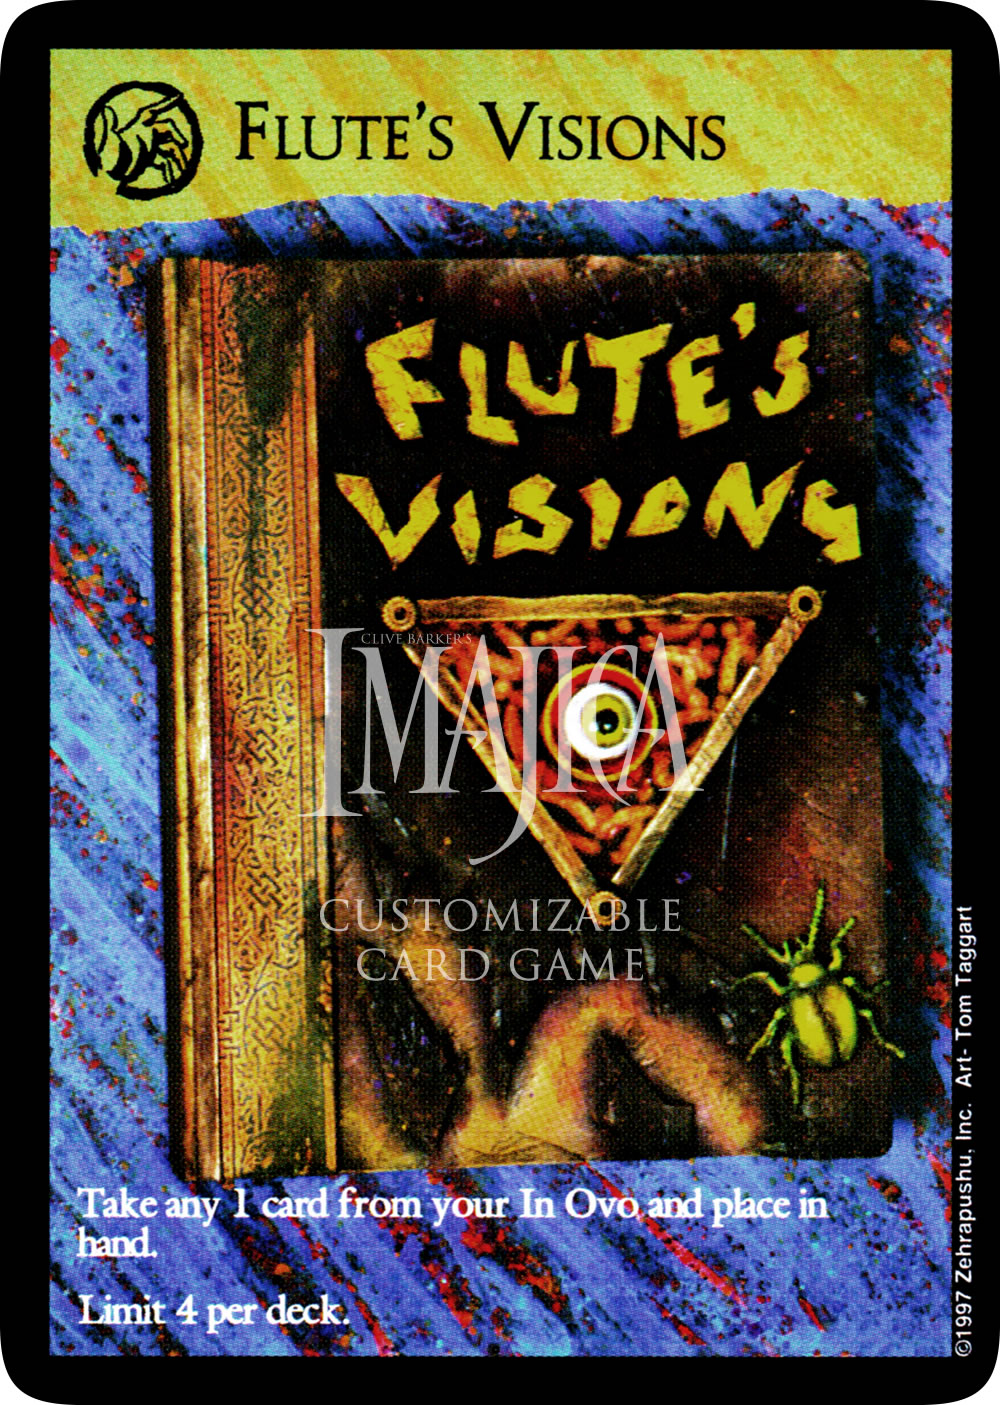 Flute's Visions